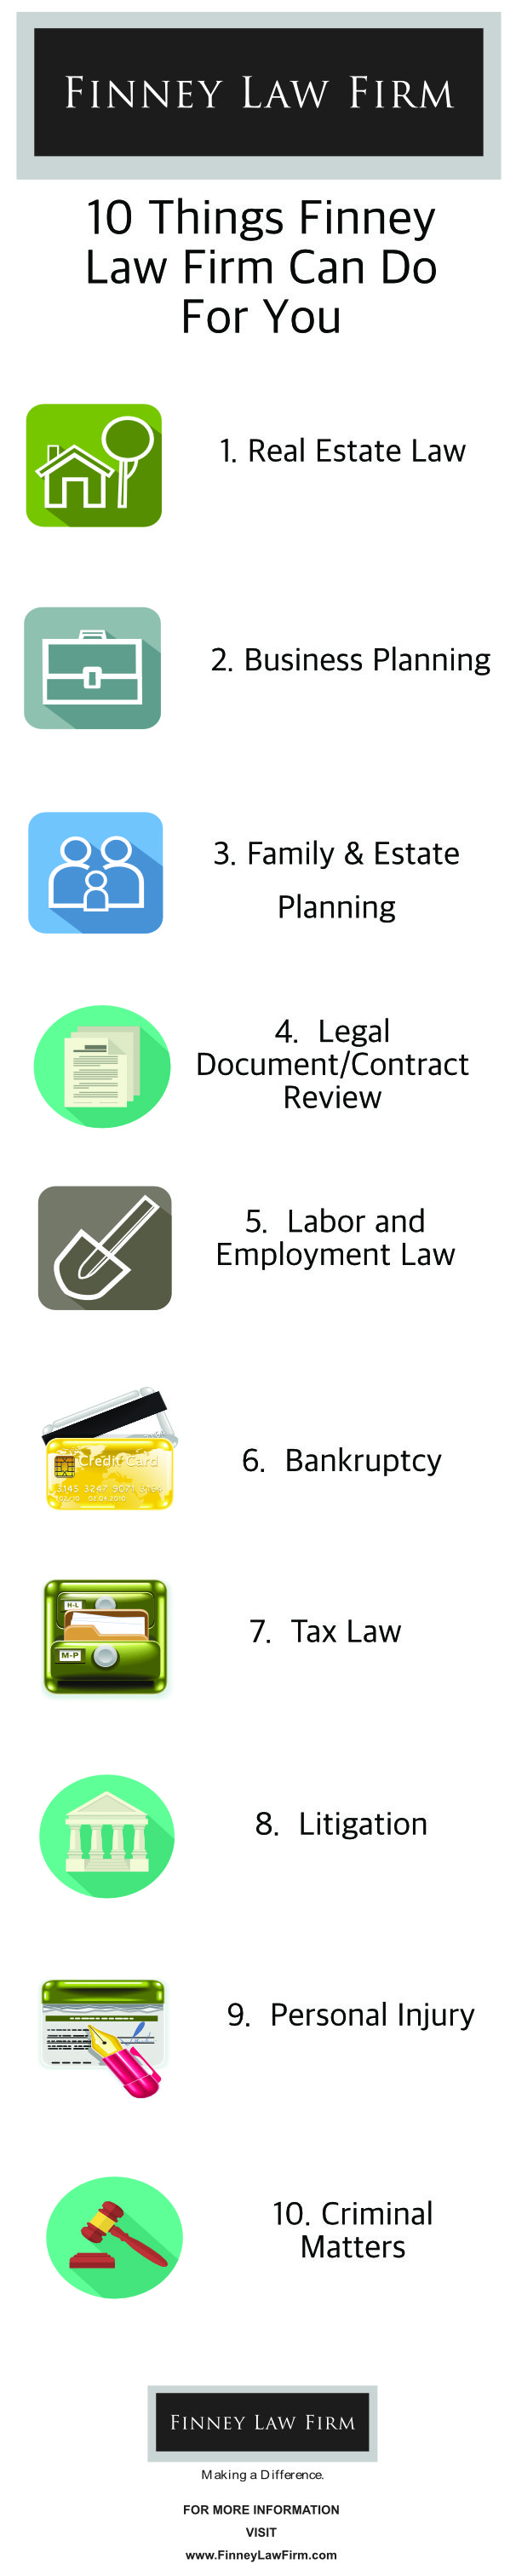 infographic of the 10 things Finney Law Firm can do for you